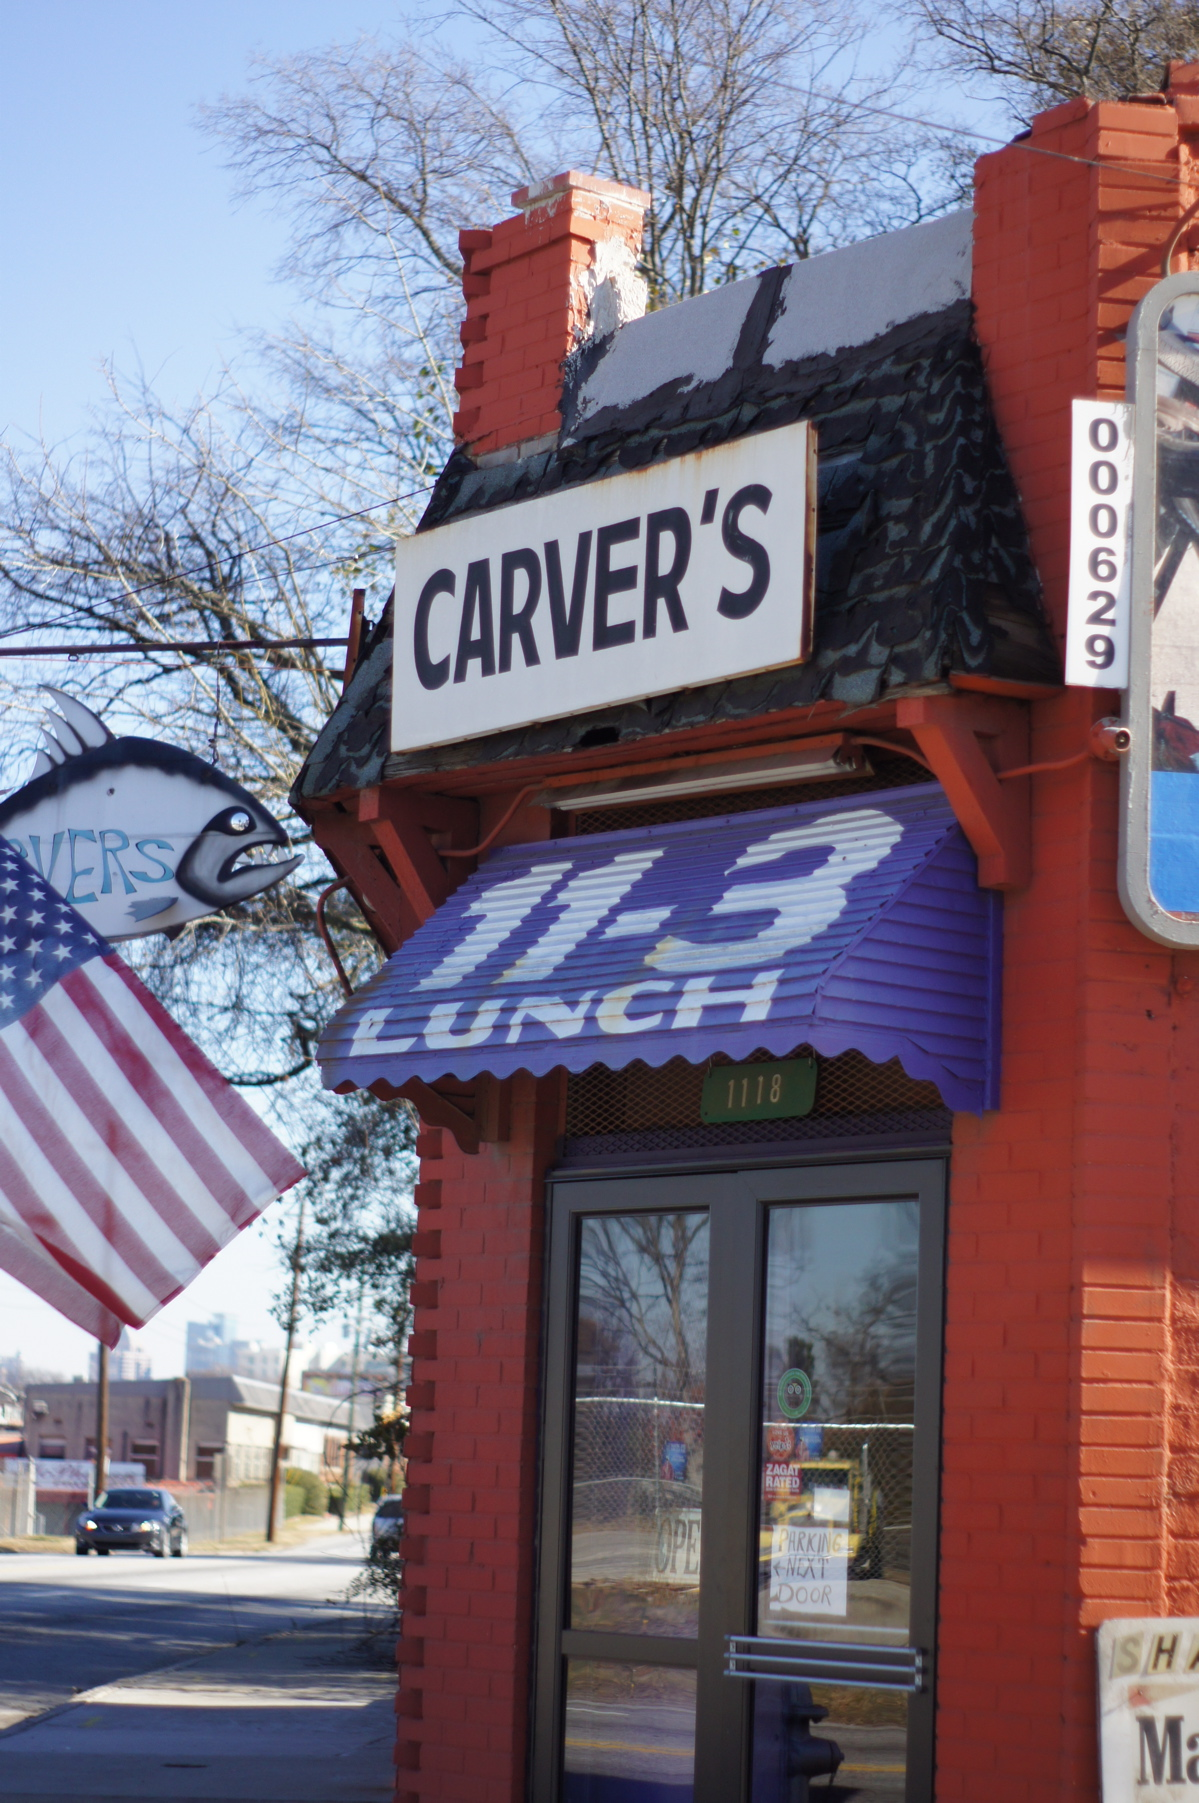 Carver S Country Kitchen Is An Award Winning Atlanta Institution That Serves Great Homemade Southern Food It Located In Area Northwest Of